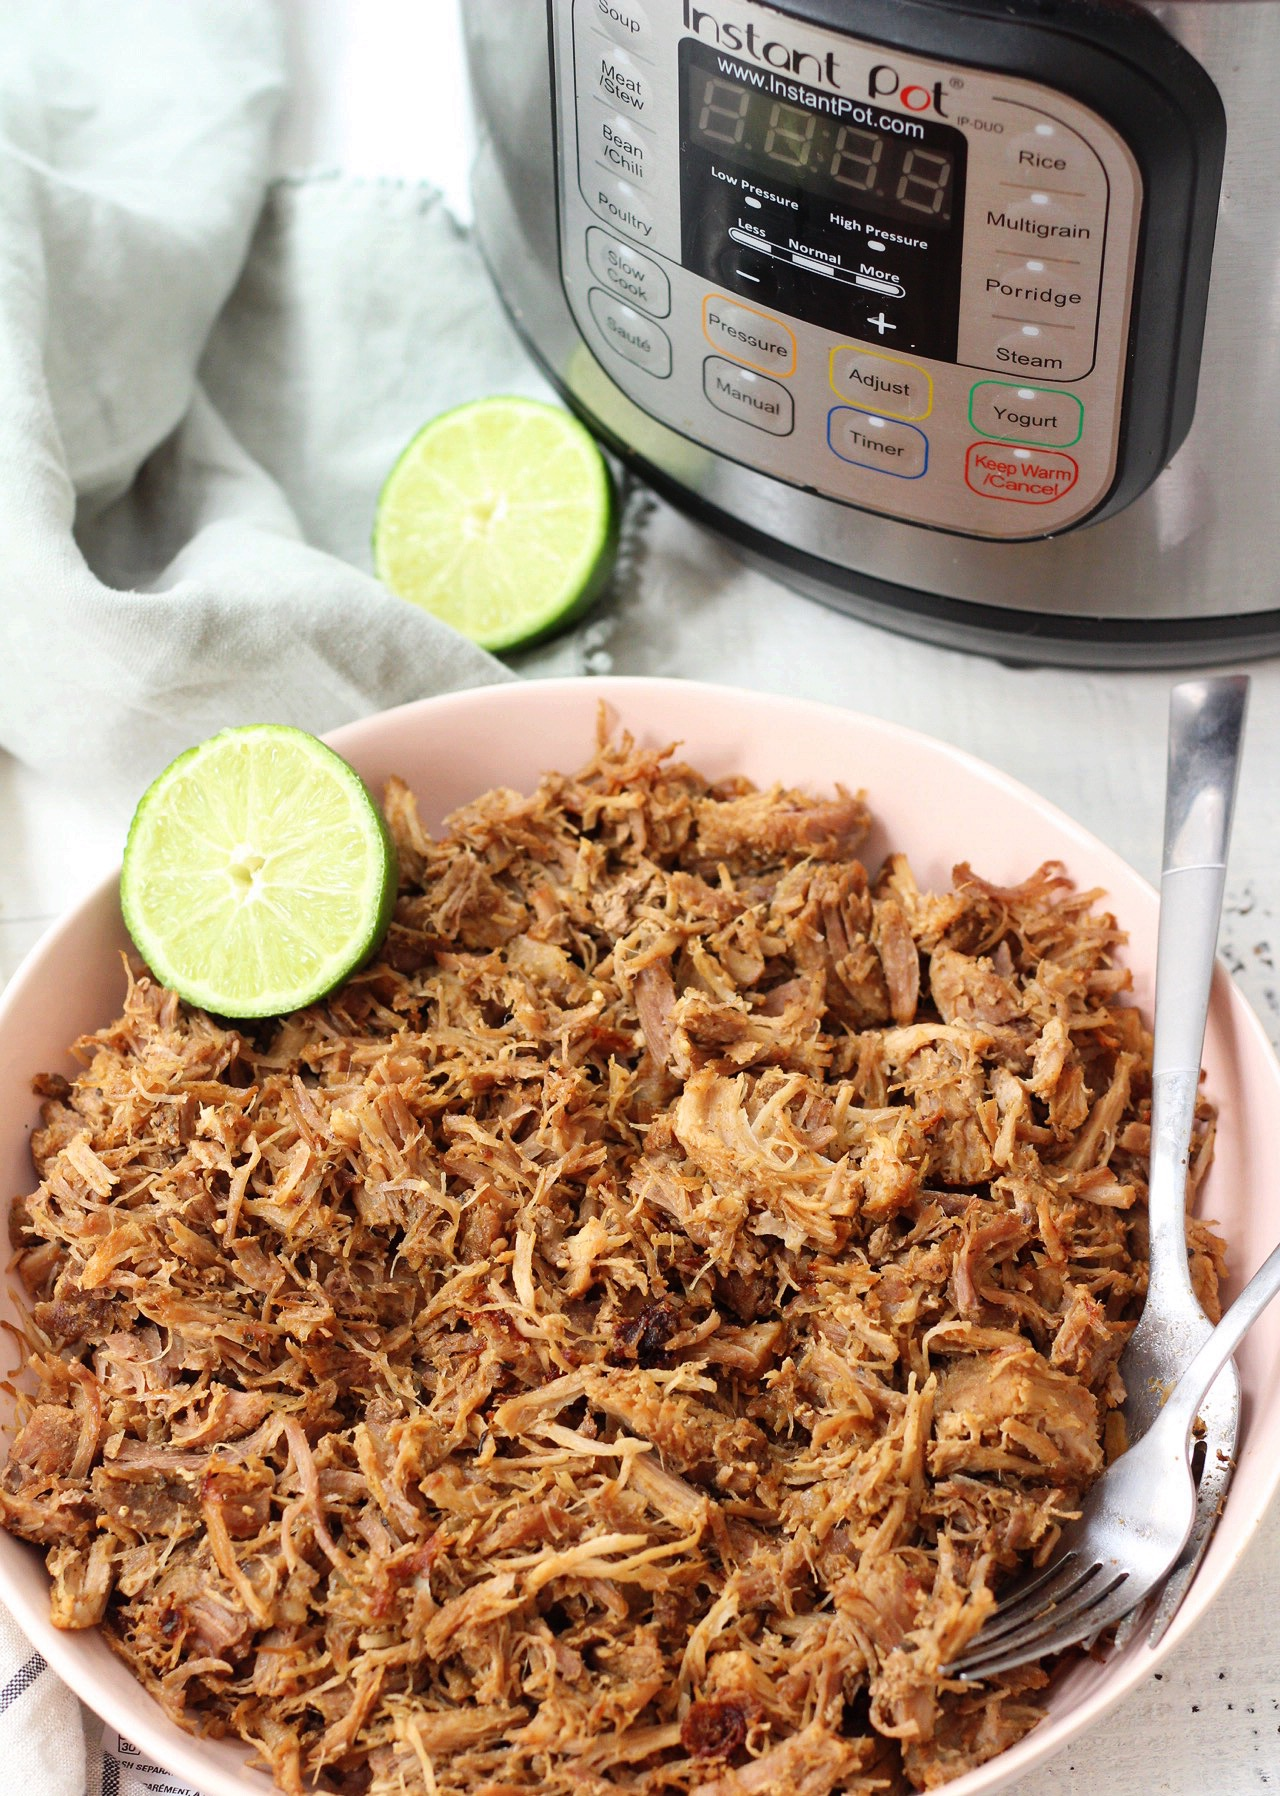 Easy Whole30 and Paleo instant pot pork carnitas only take a few simple ingredients and less than an hours time to cook perfectly! This is a great whole30 pork recipe for meal prep, or as a family friendly recipes for tacos or burritos! #paleocarnitas #whole30instantpot #whole30carnitas